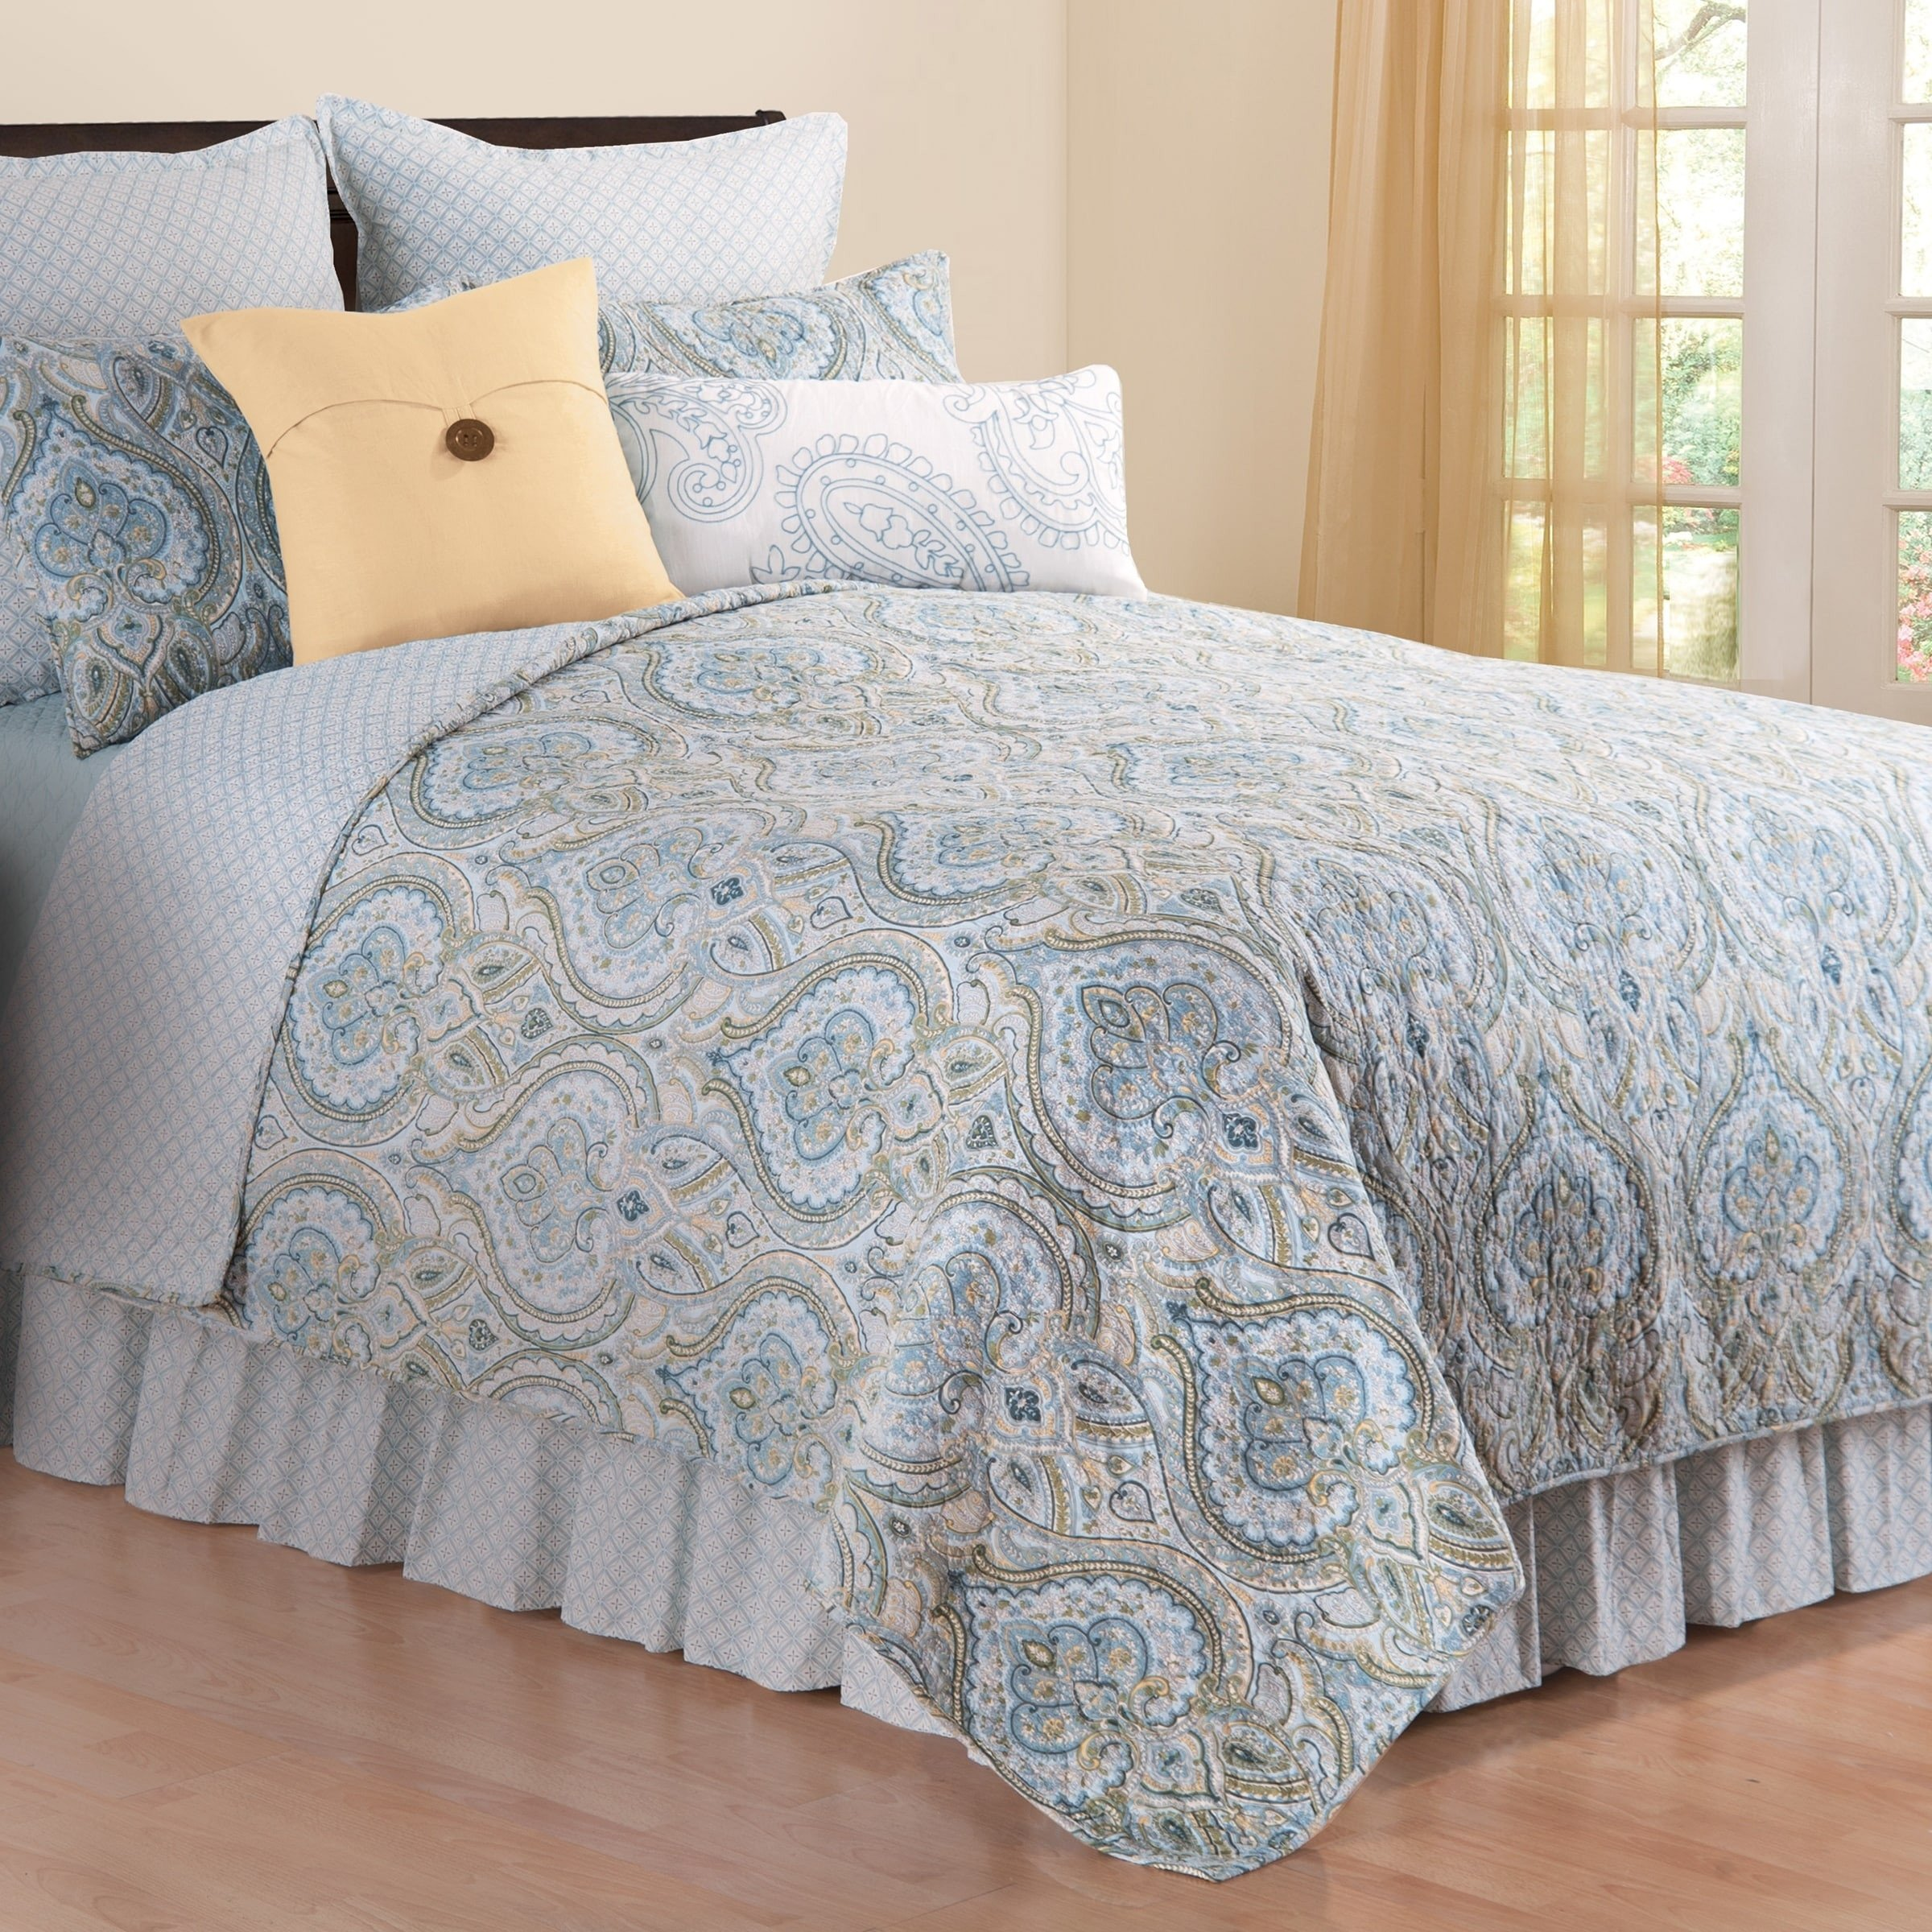 Laura ashley Bedroom Set Elegant Amherst Blue Quilt Set